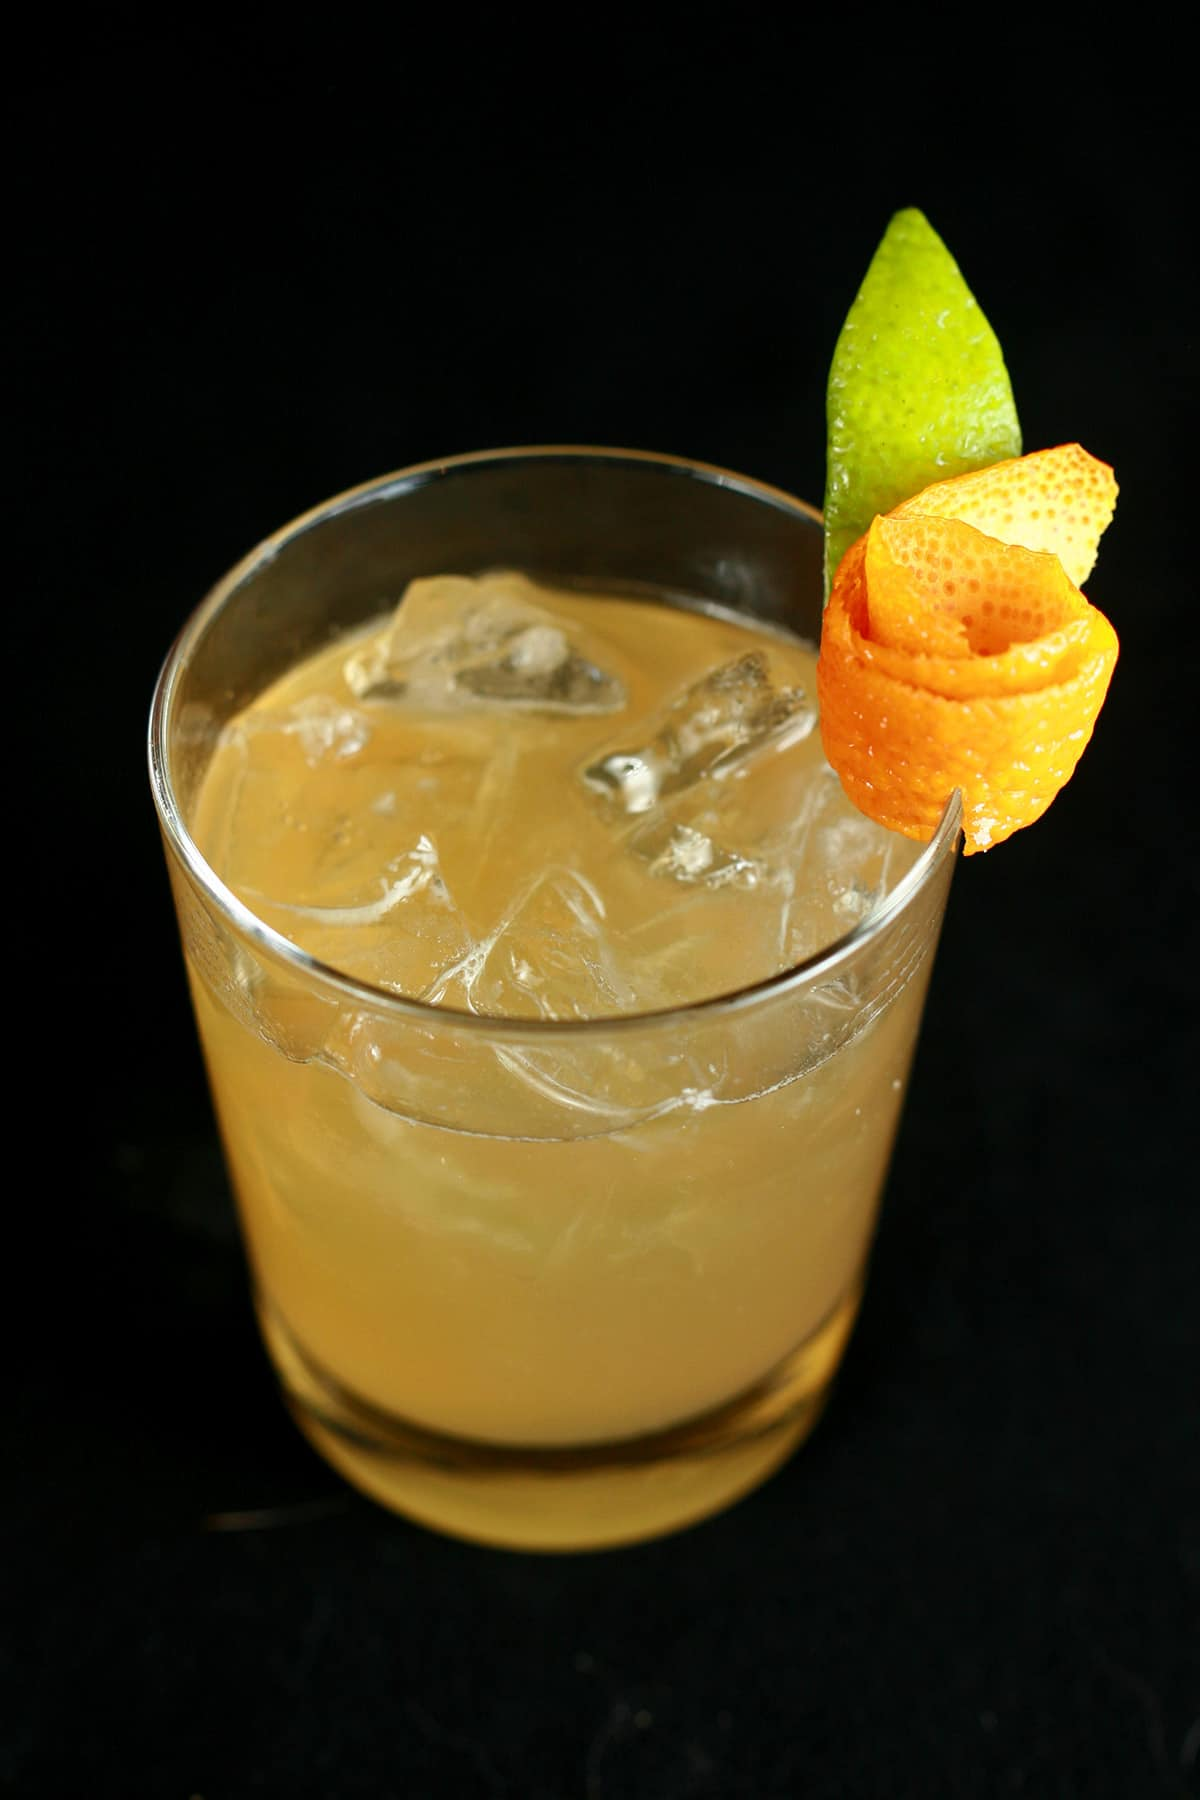 A small glass of amaretto sour, garnished with a citrus rose.